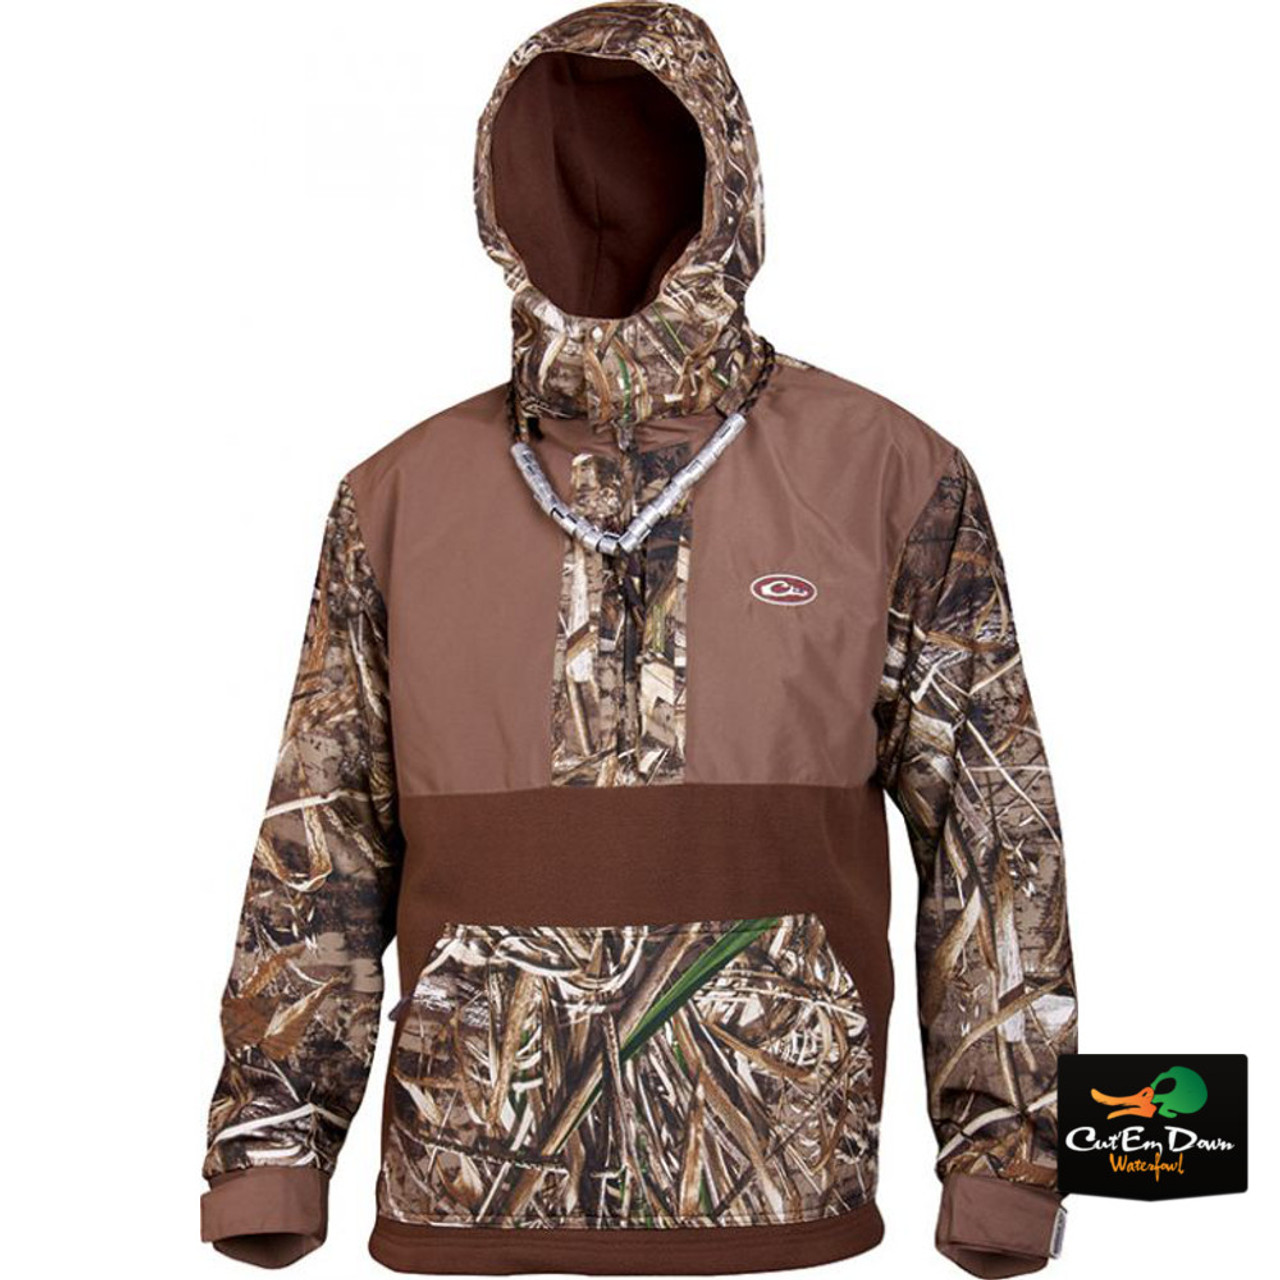 5396ce45be708 Drake Waterfowl MST Shooter's Quarter Zip Pullover